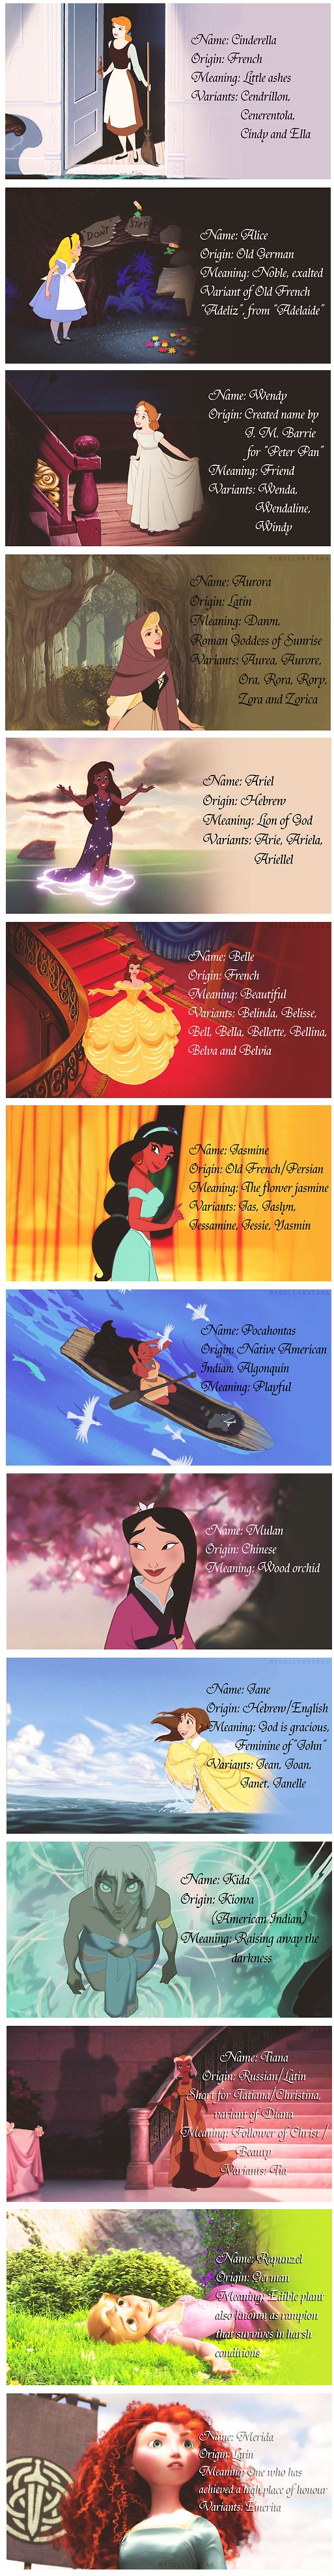 The meanings behind the names of the Disney ladies